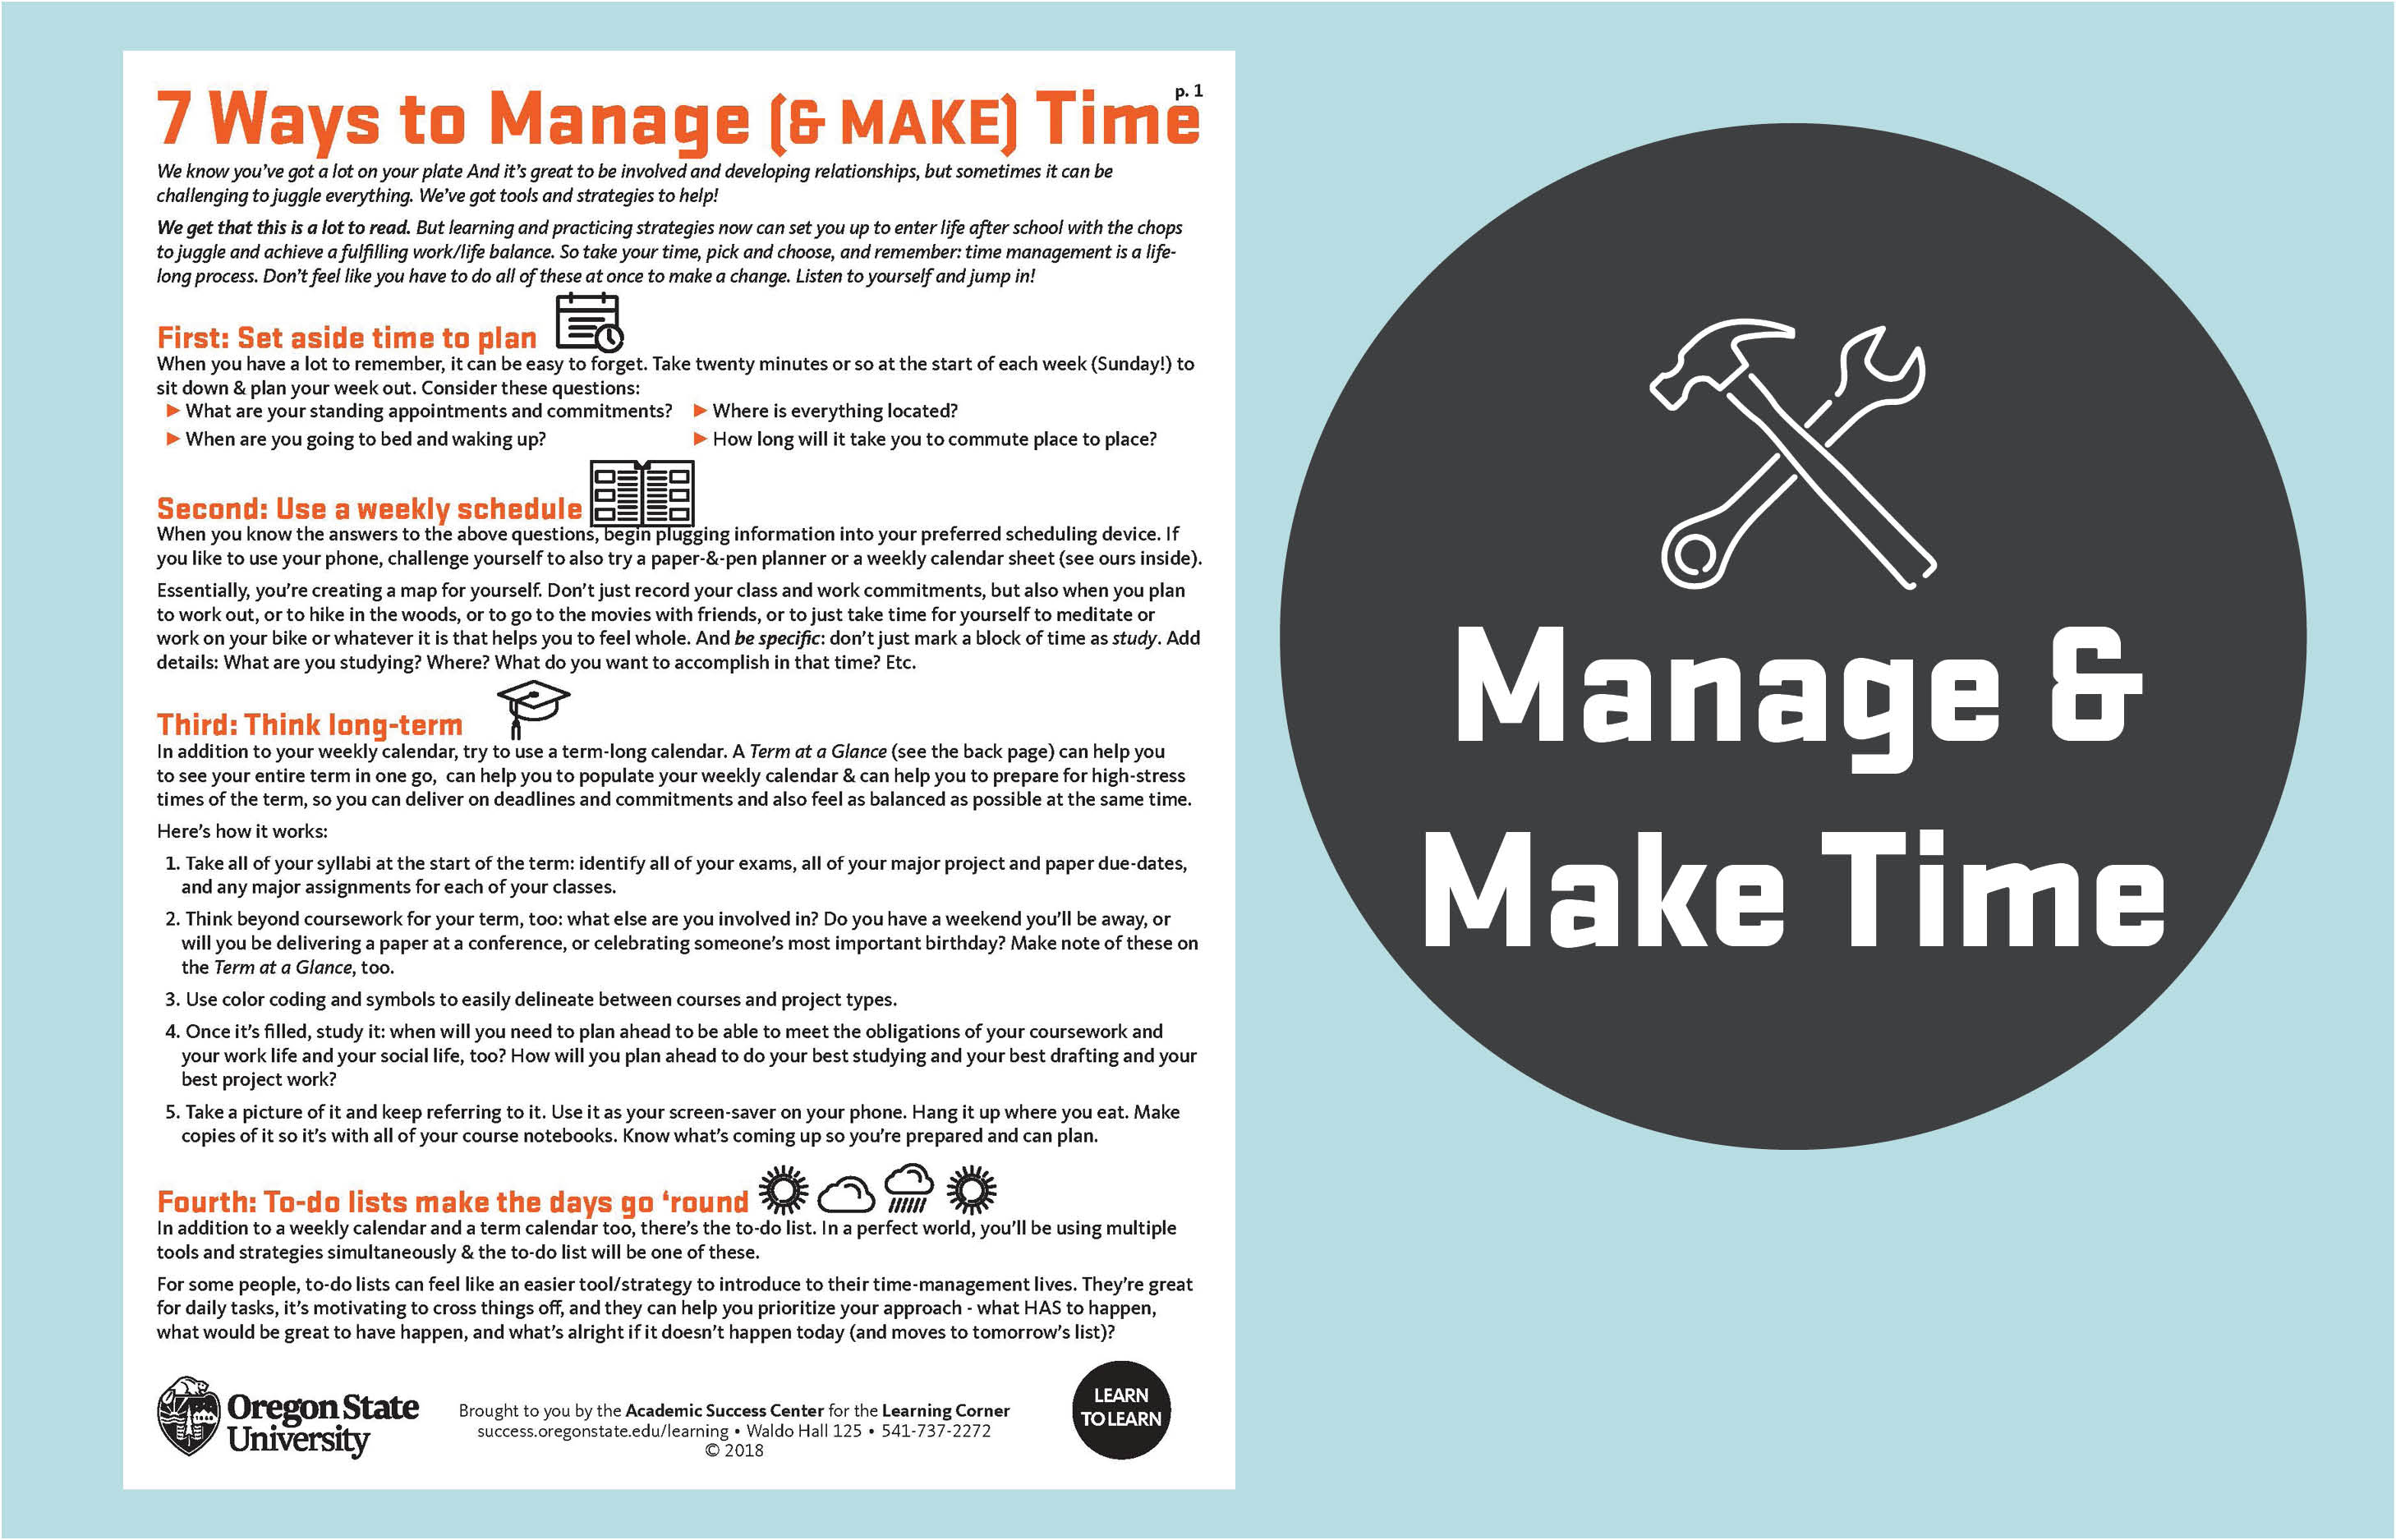 7 Ways to Manage (and Make!) Time